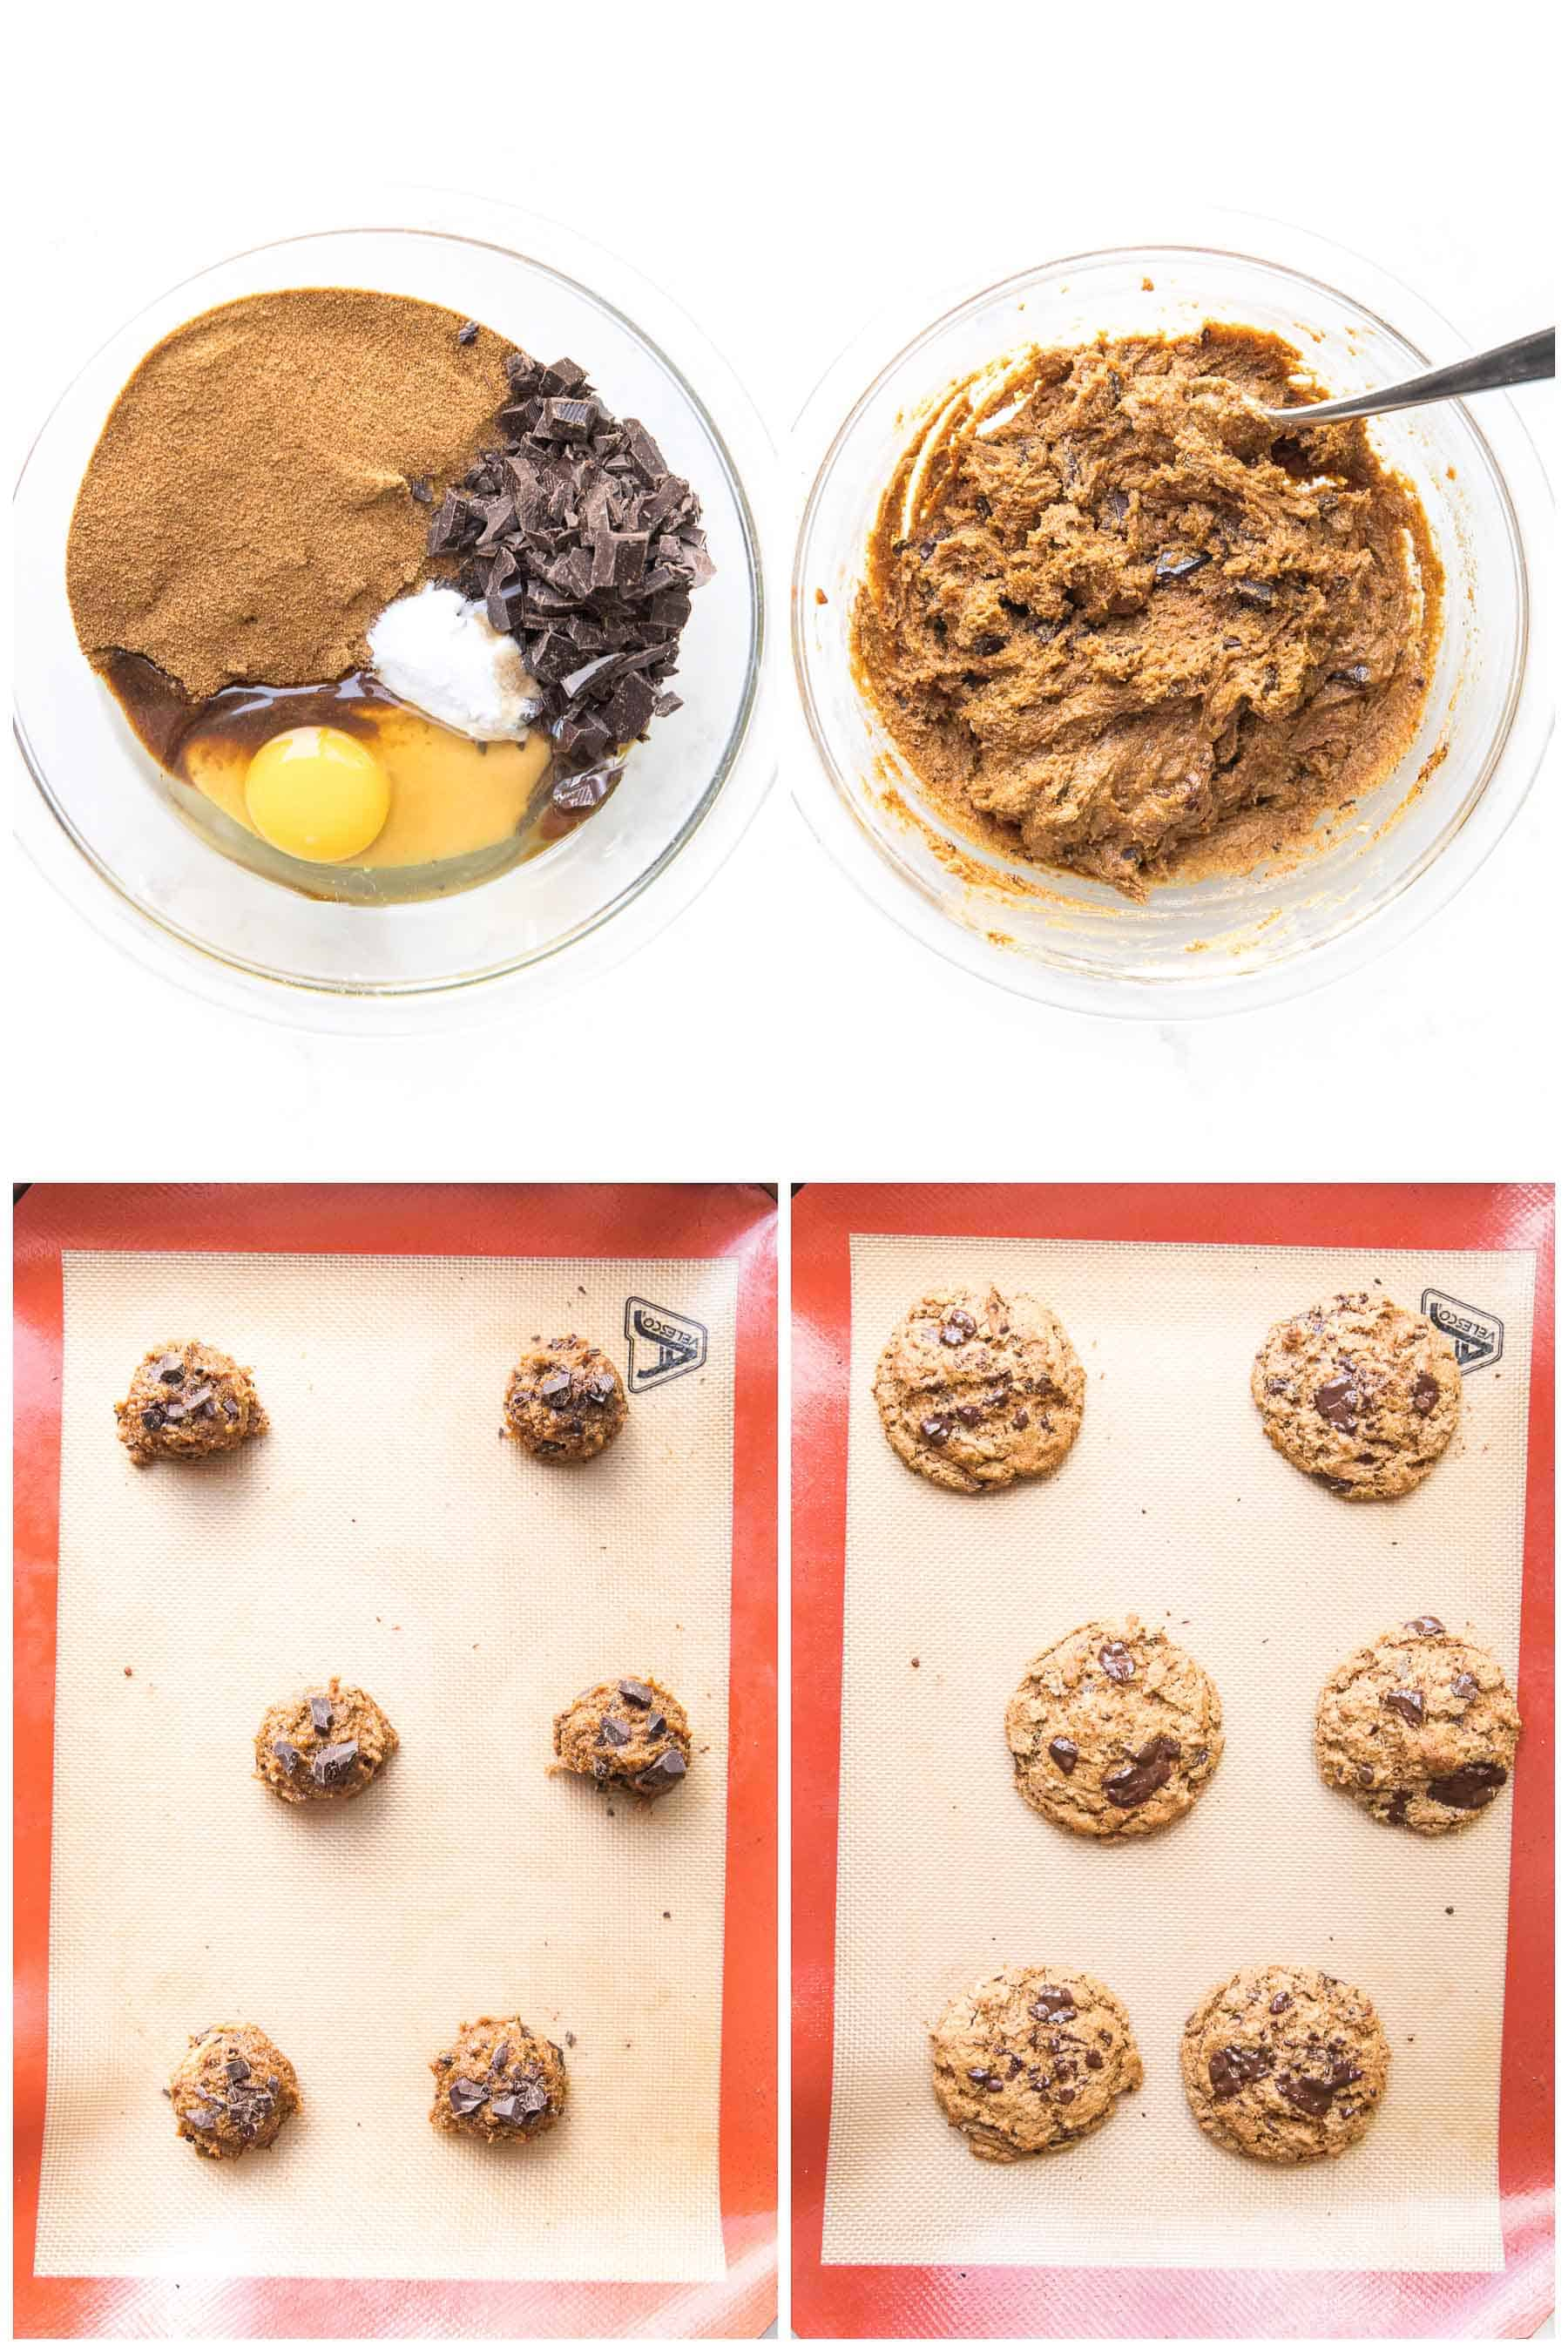 steps to making keto chocolate chip cookies